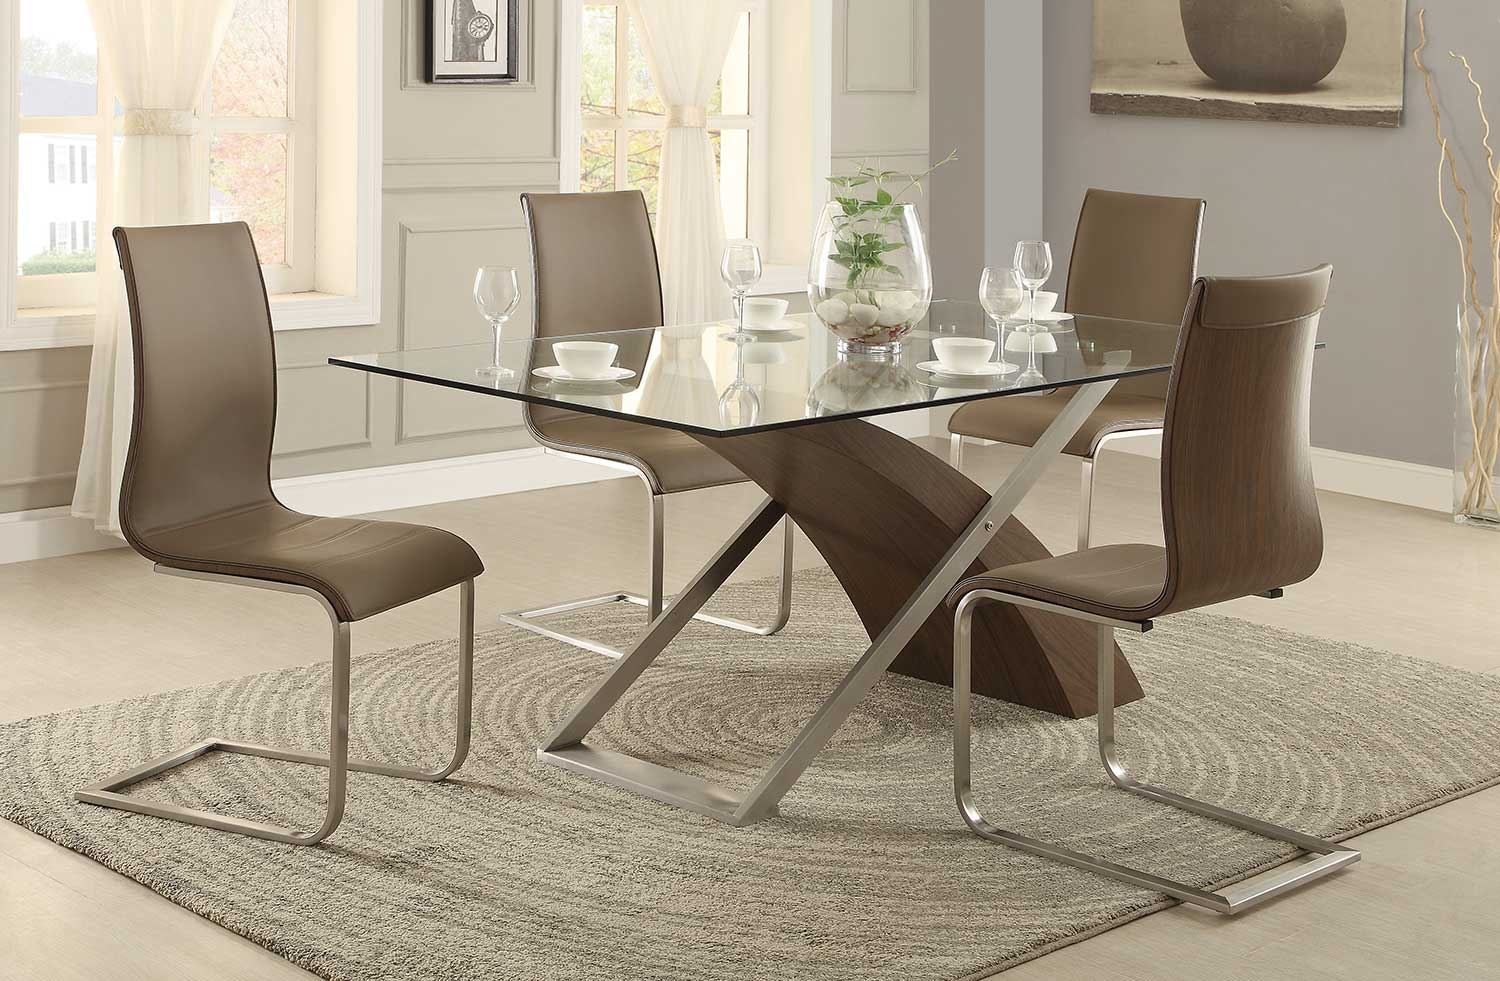 Homelegance Odeon Dining Set - Wood/Stainless Steel